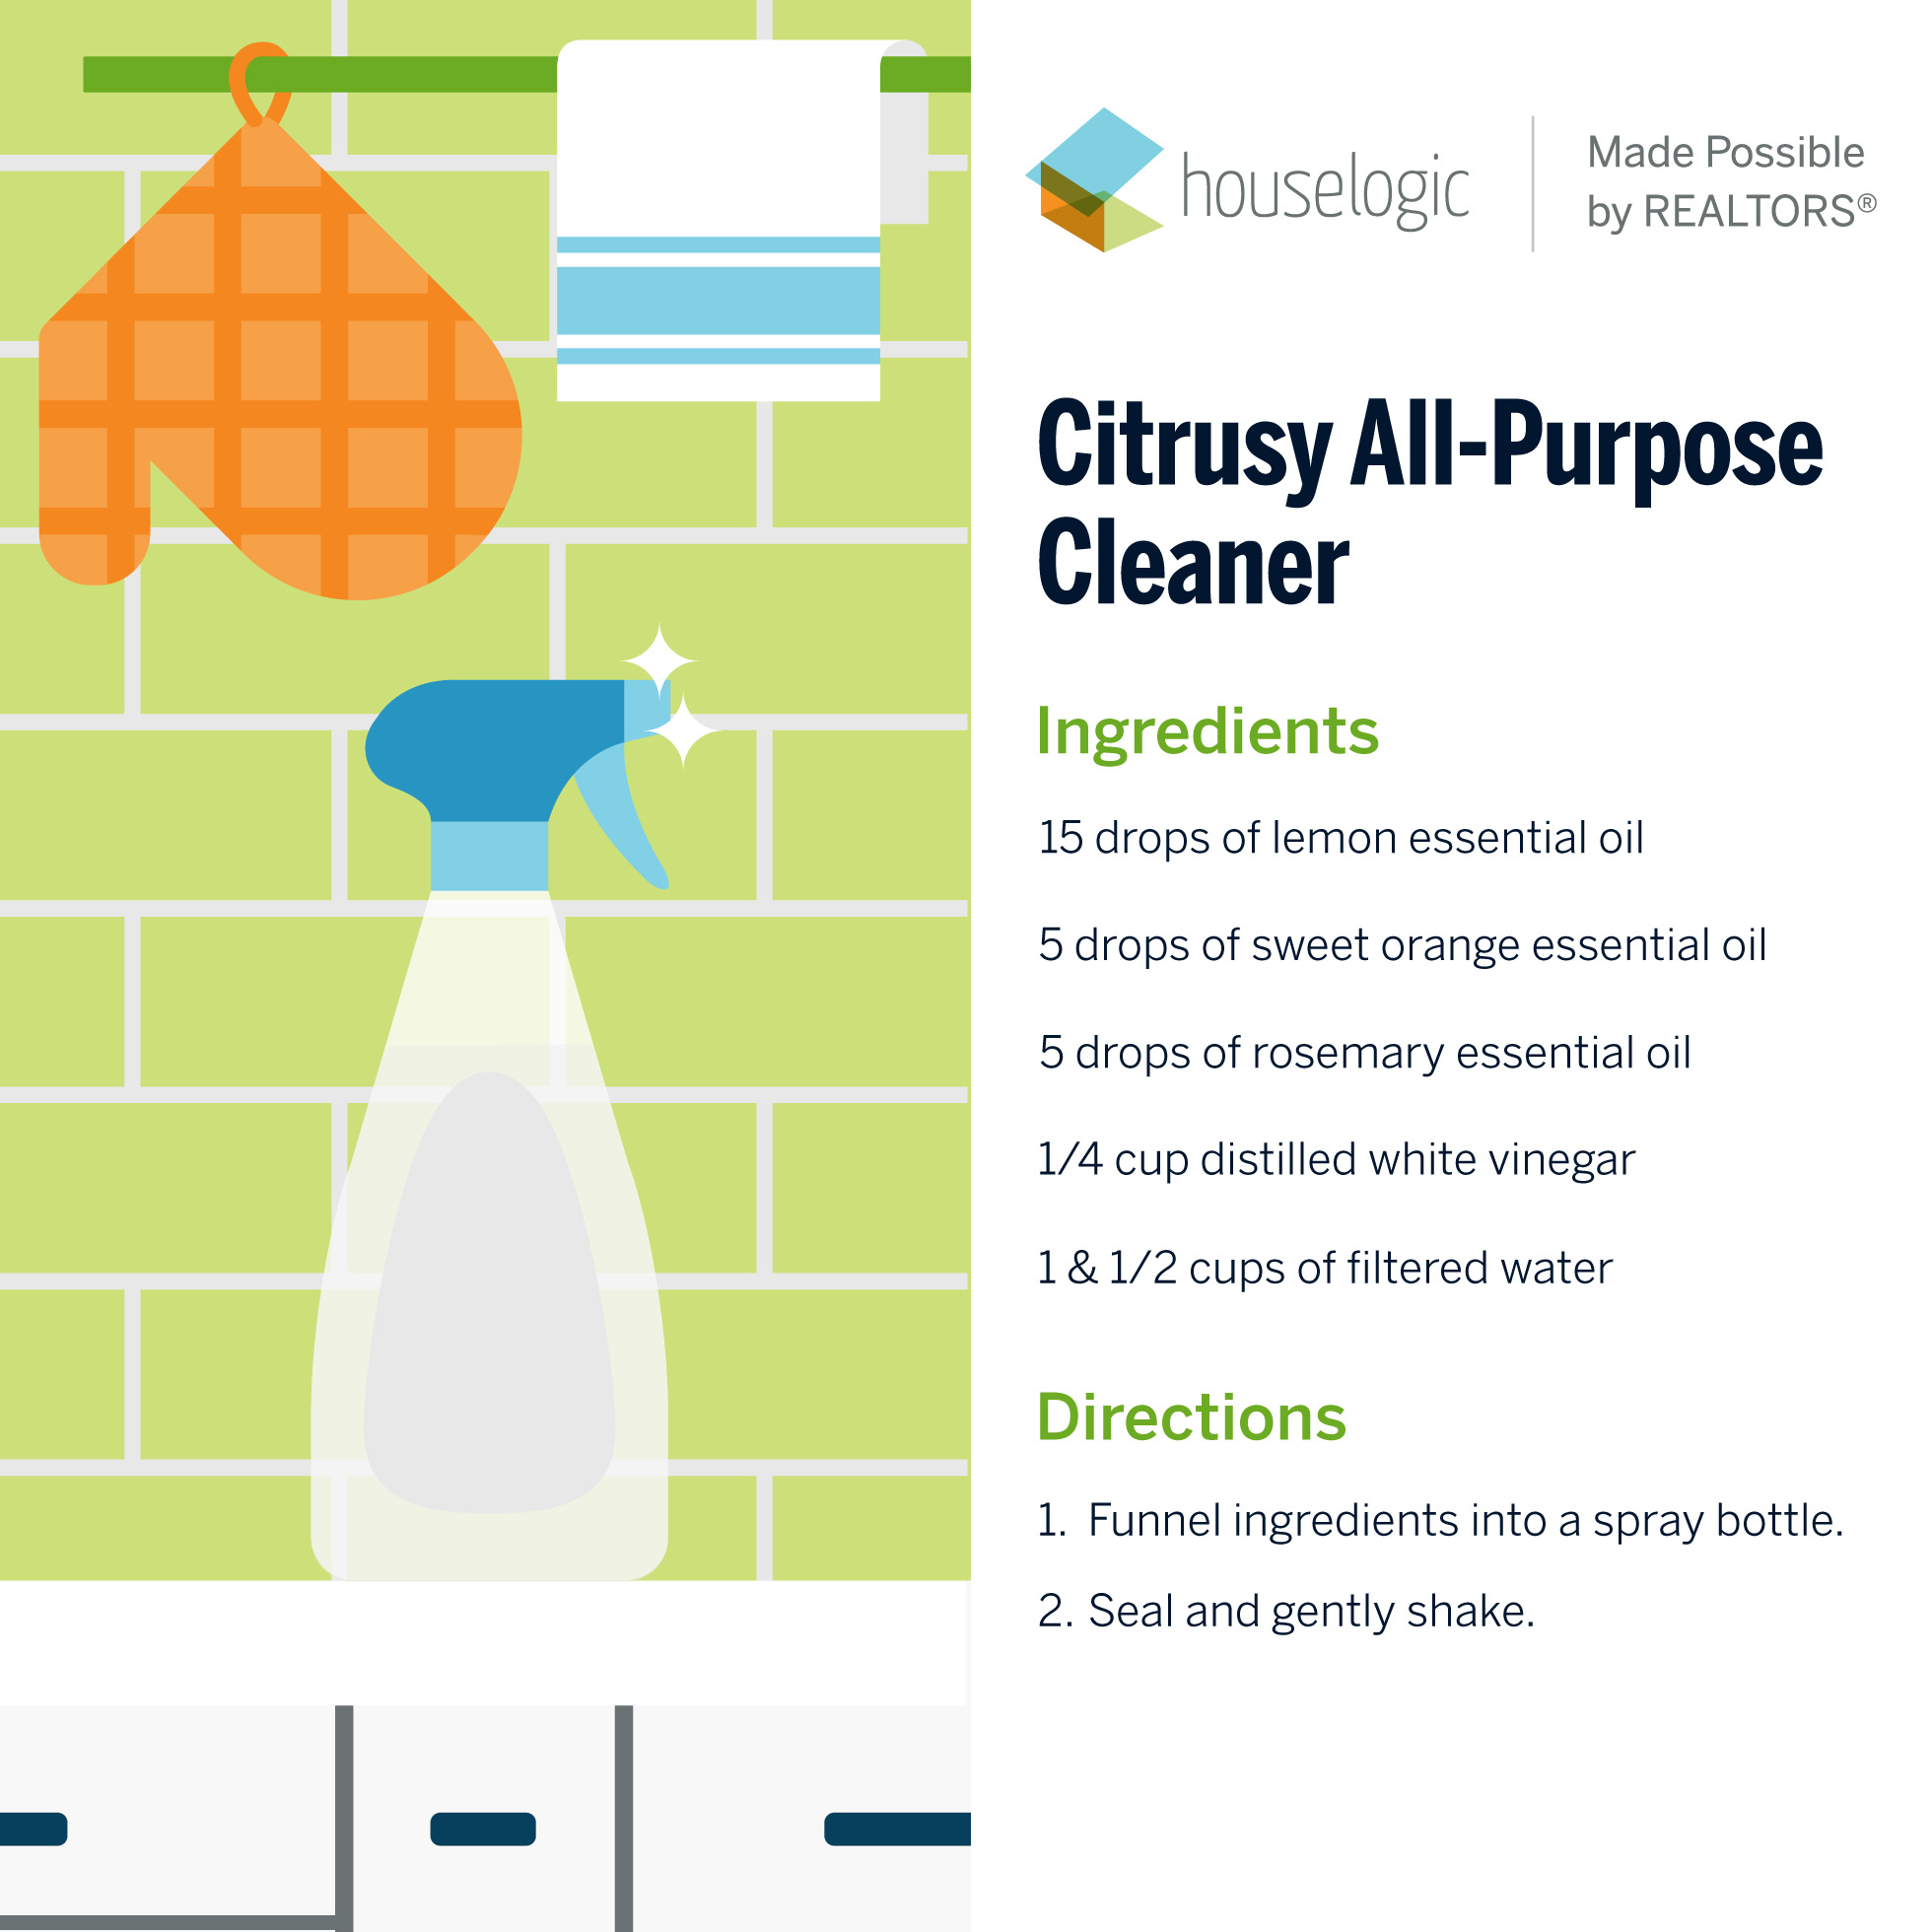 Recipe for homemade citrusy all-purpose cleaner